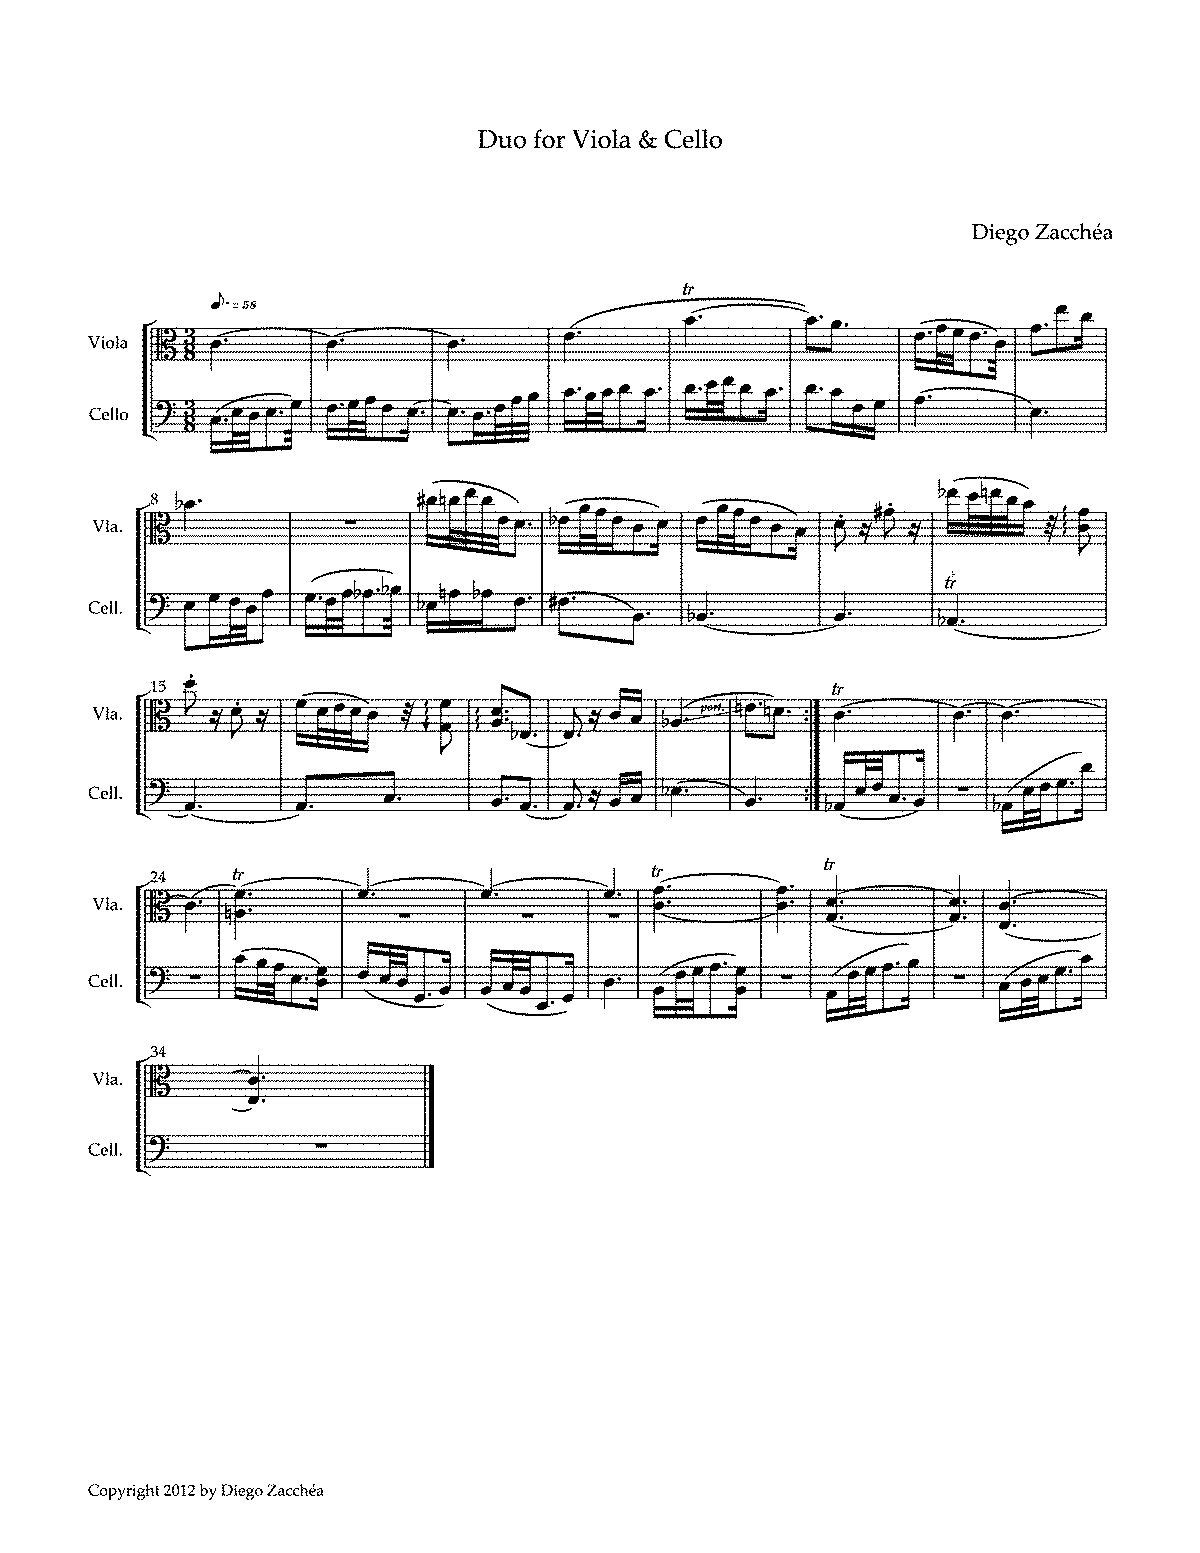 PMLP399438-Duo for Viola & Cello by Diego Zacchéa.pdf